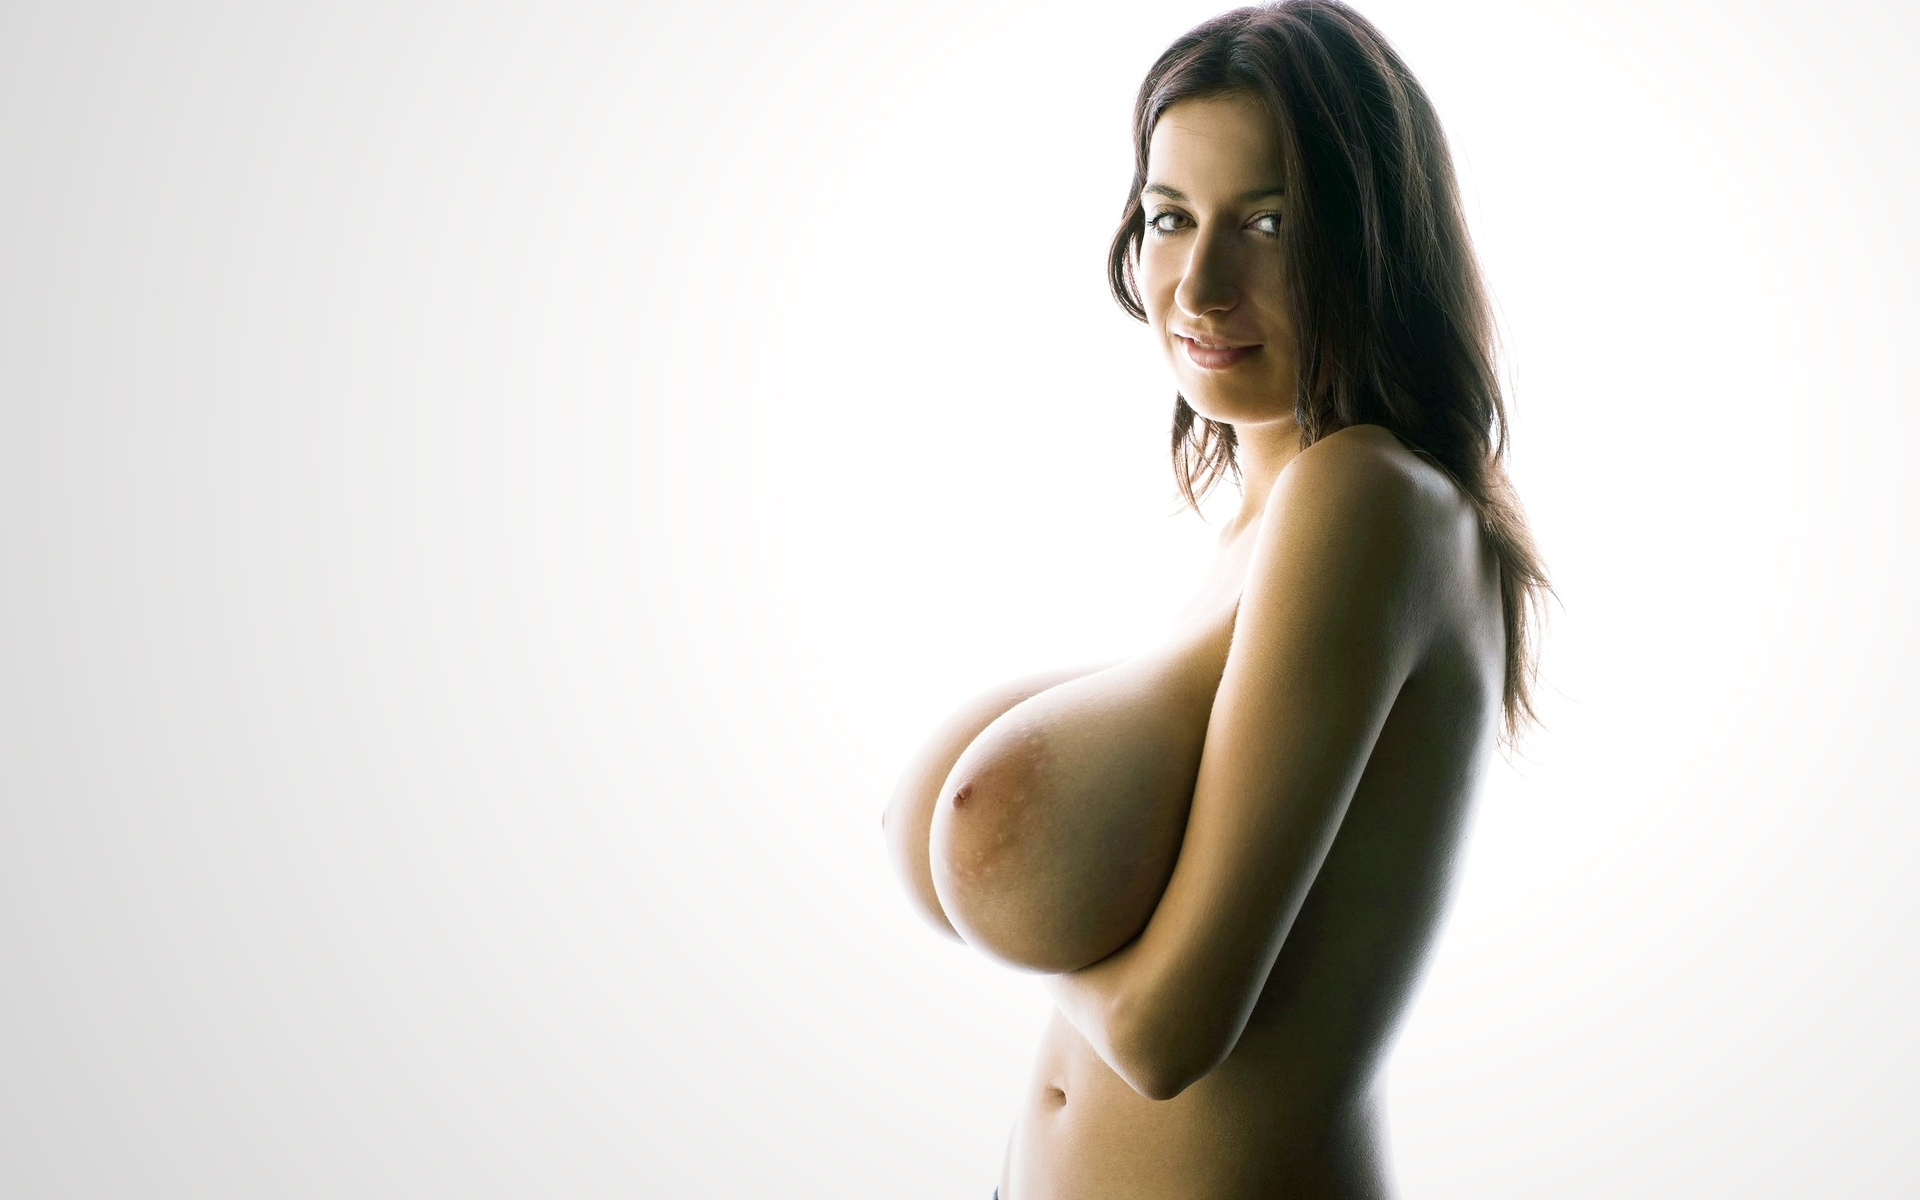 Hot and sexy girls with big boobs